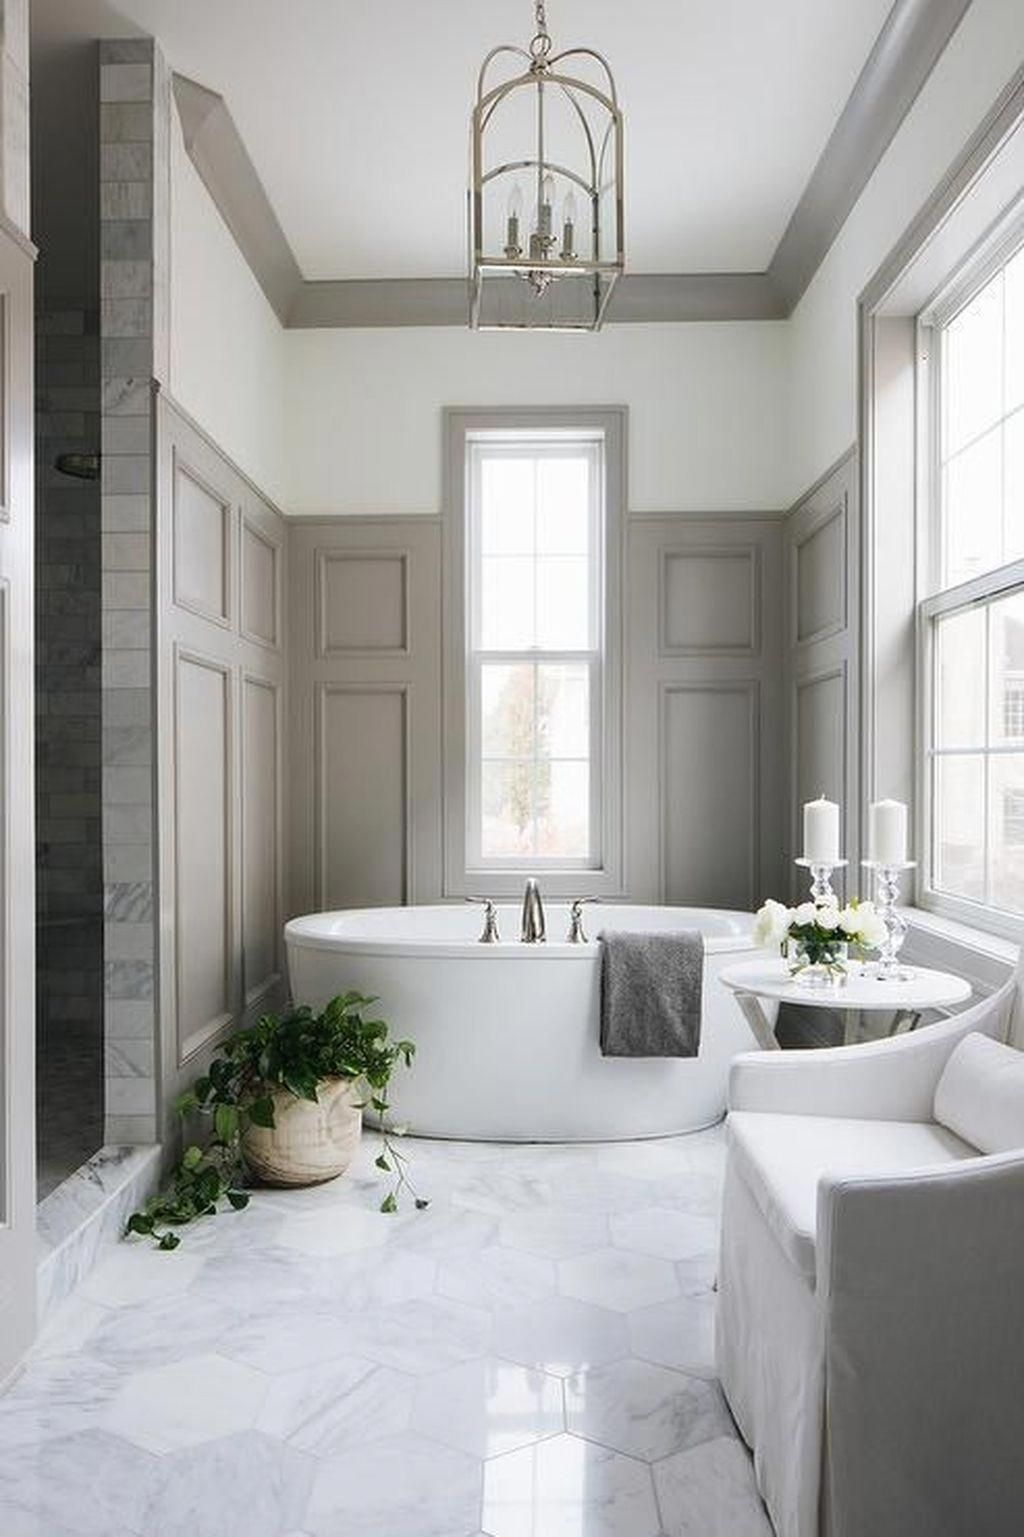 30 awesome master bathroom remodel ideas on a budget on bathroom renovation ideas on a budget id=21685